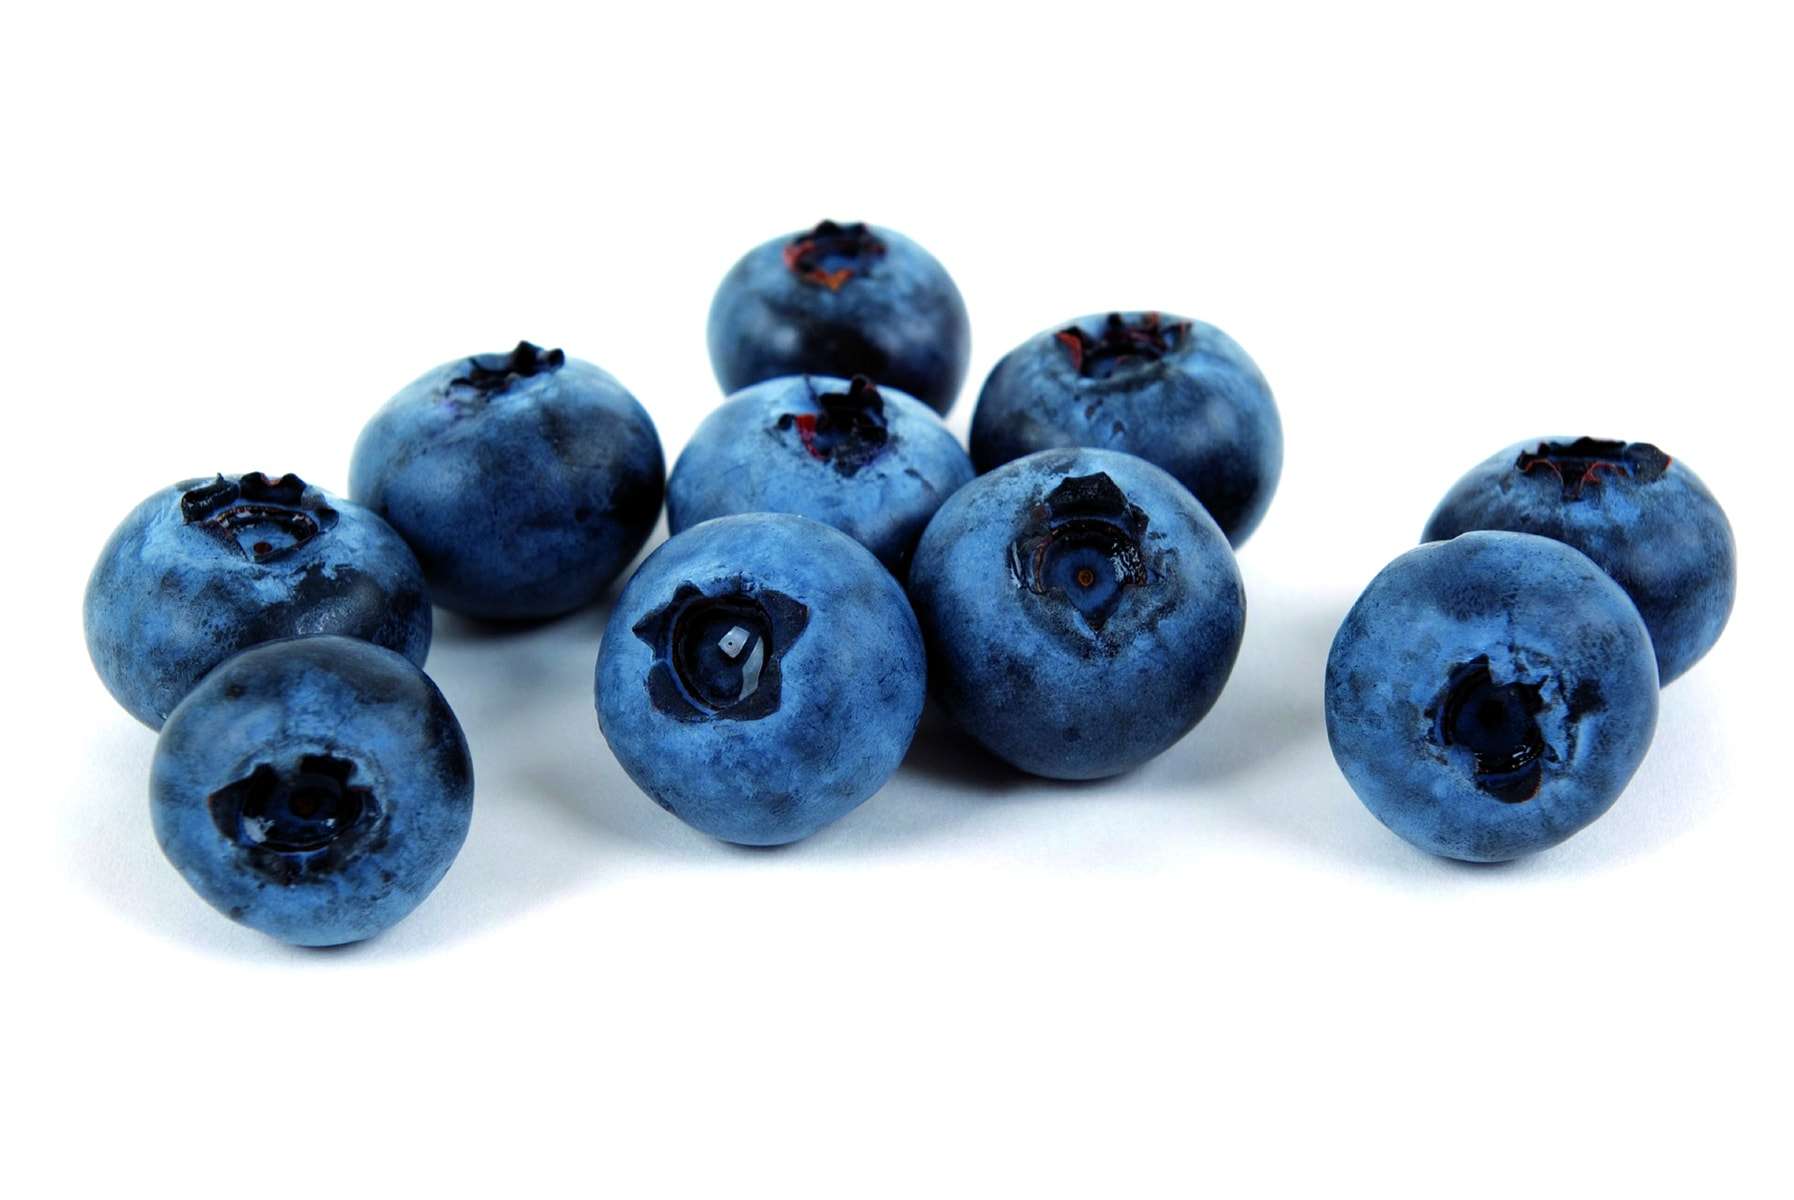 Why we like blueberries - Healthy Food Guide